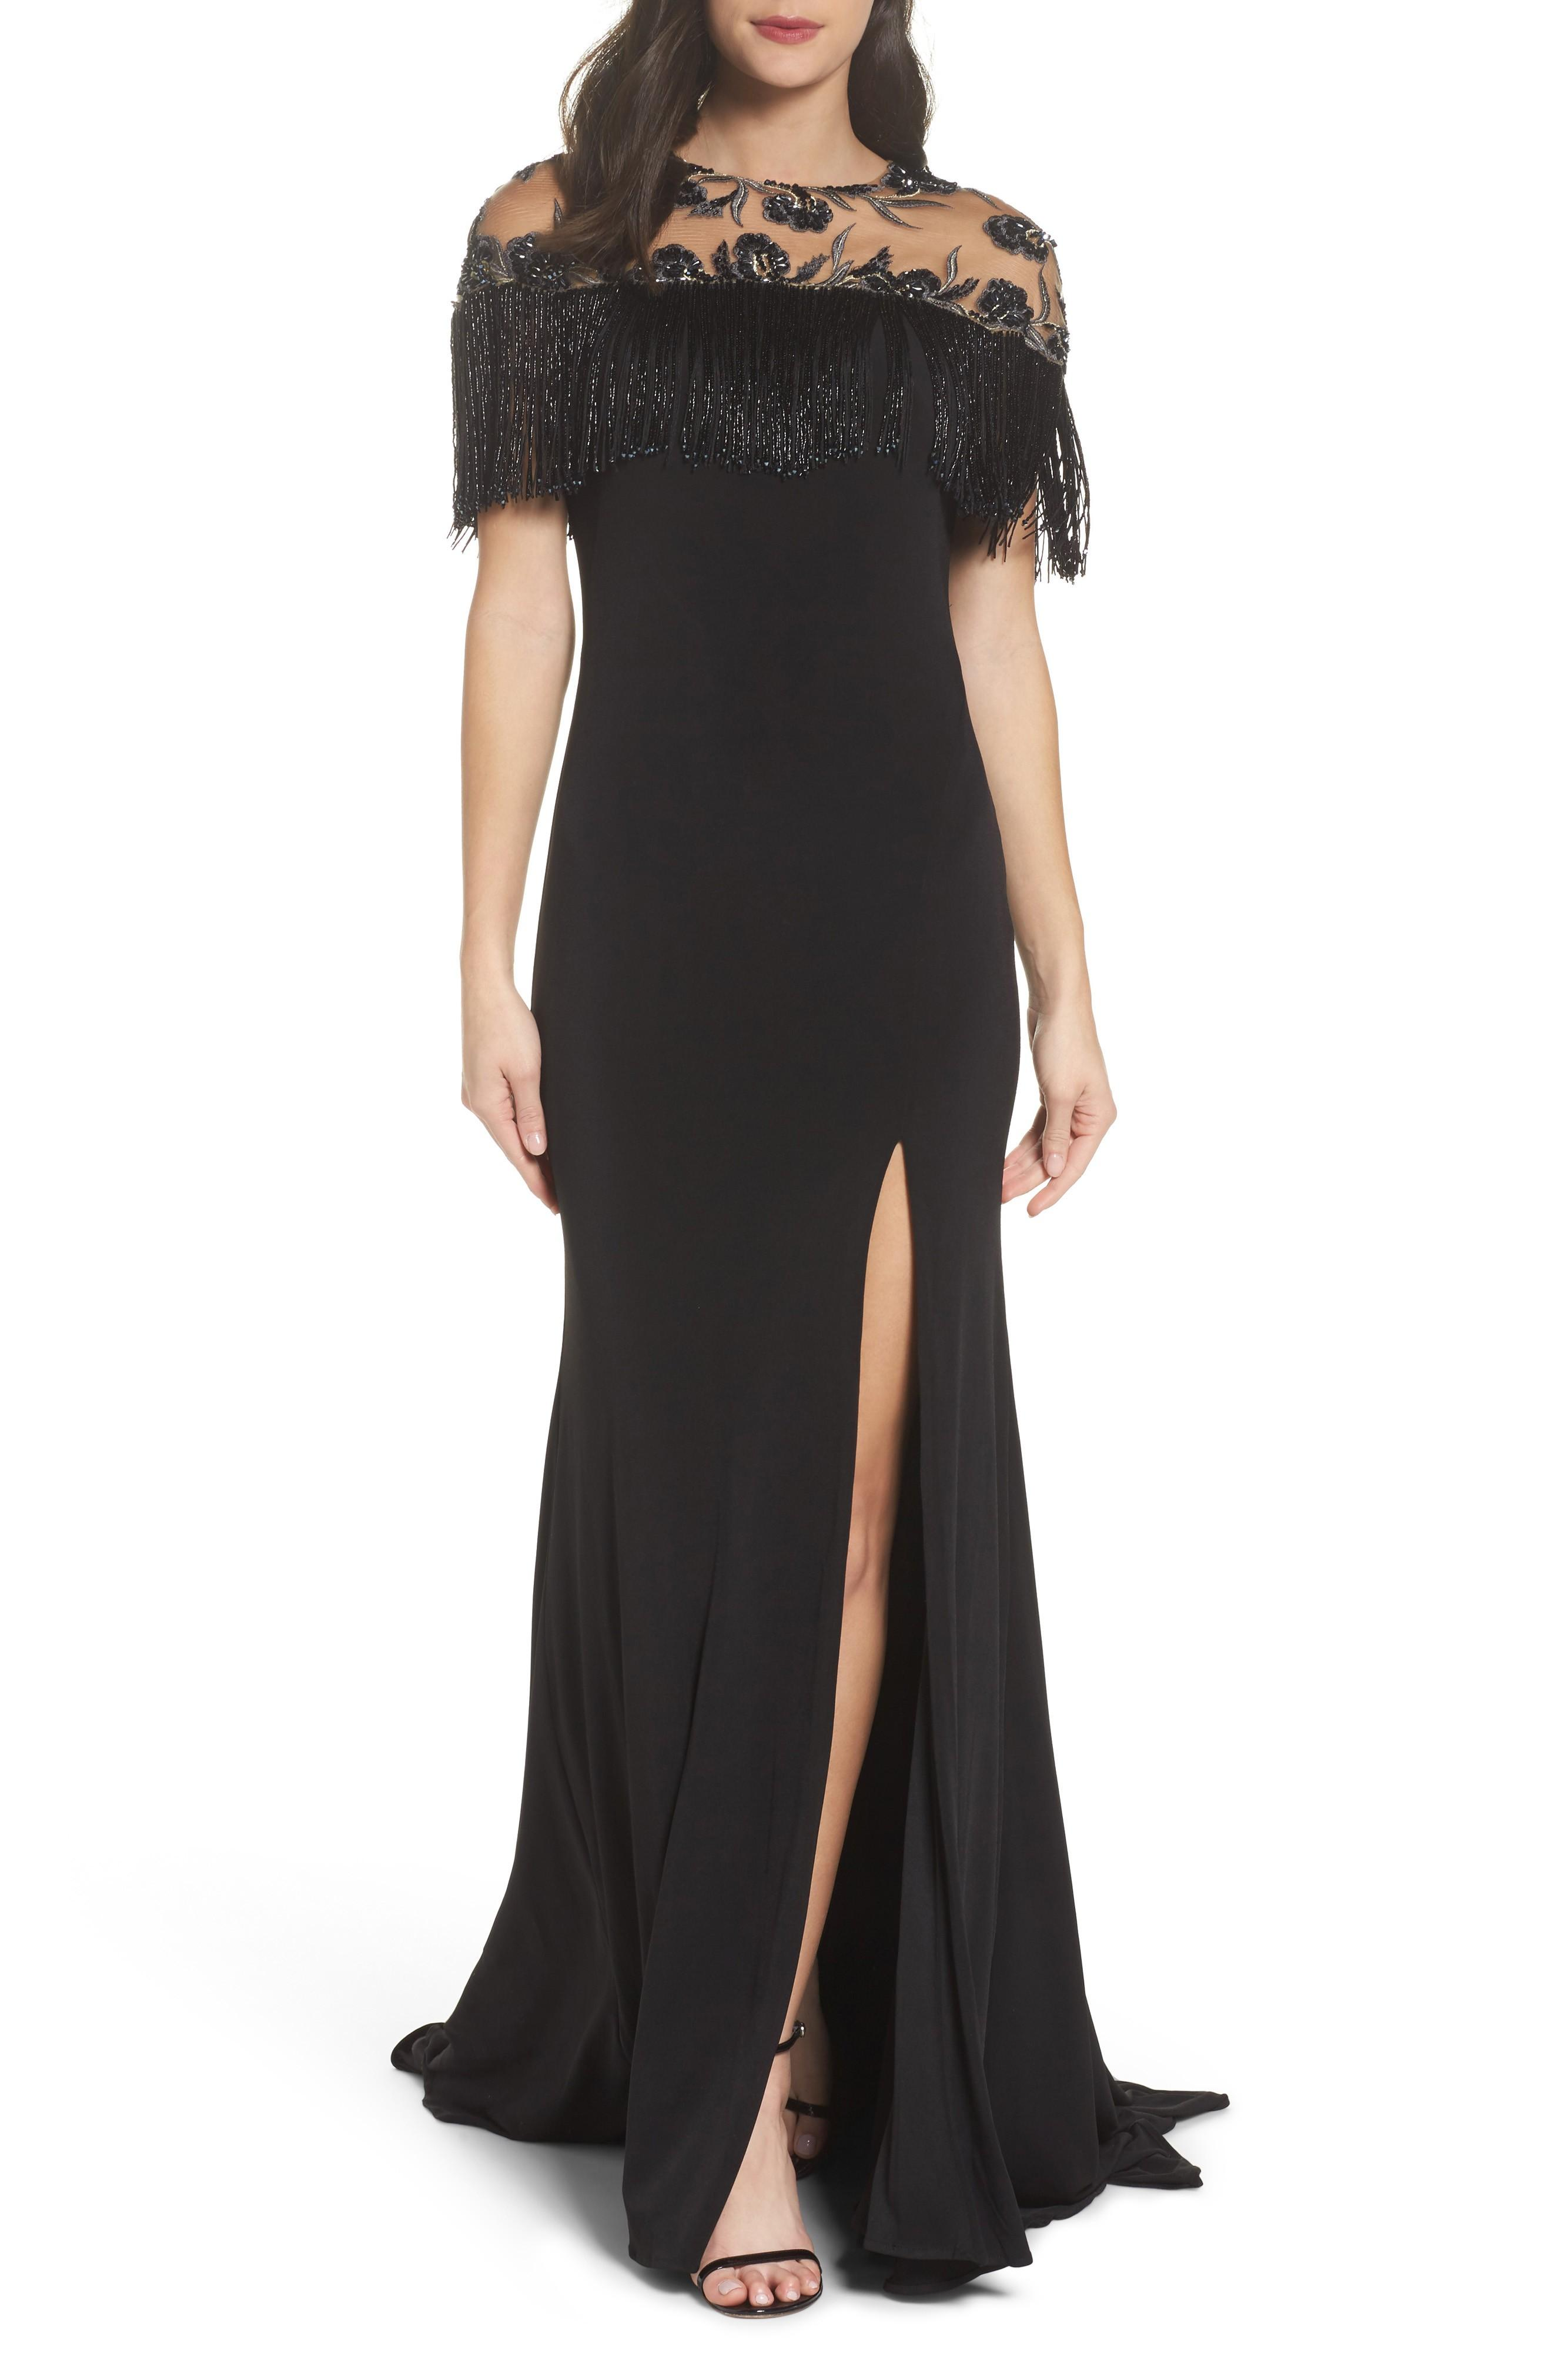 dce4b92c6d Mac Duggal Beaded Fringe Bodice Gown In Black | ModeSens